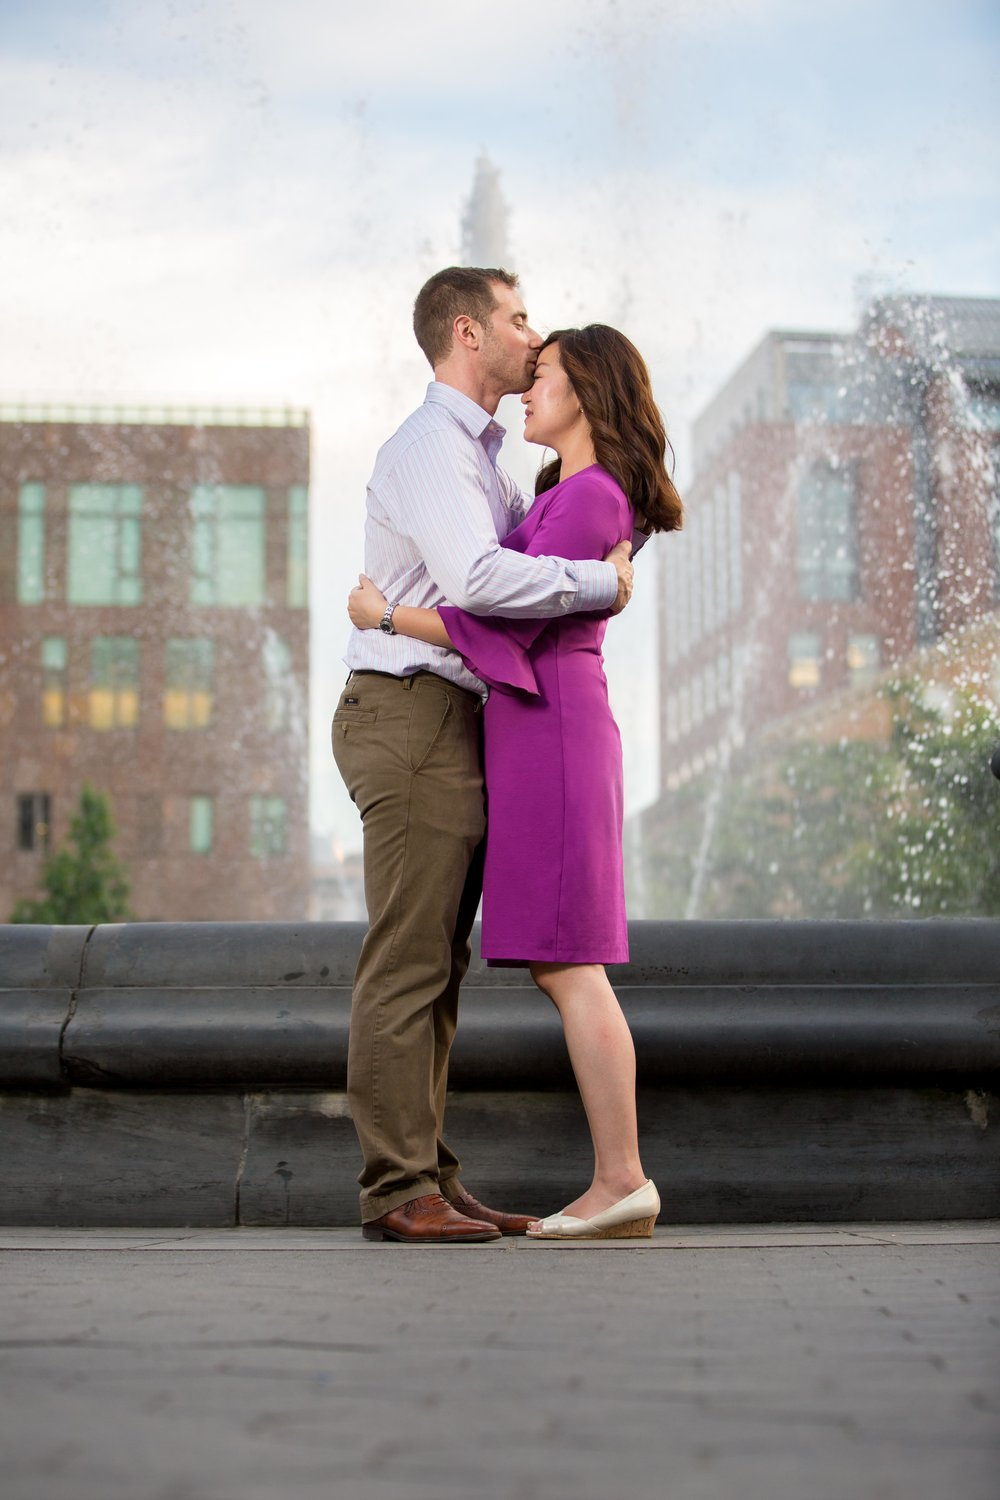 West Village Washington Square Park NYC Marriage Engagement Photo Session Shoot-12.jpg